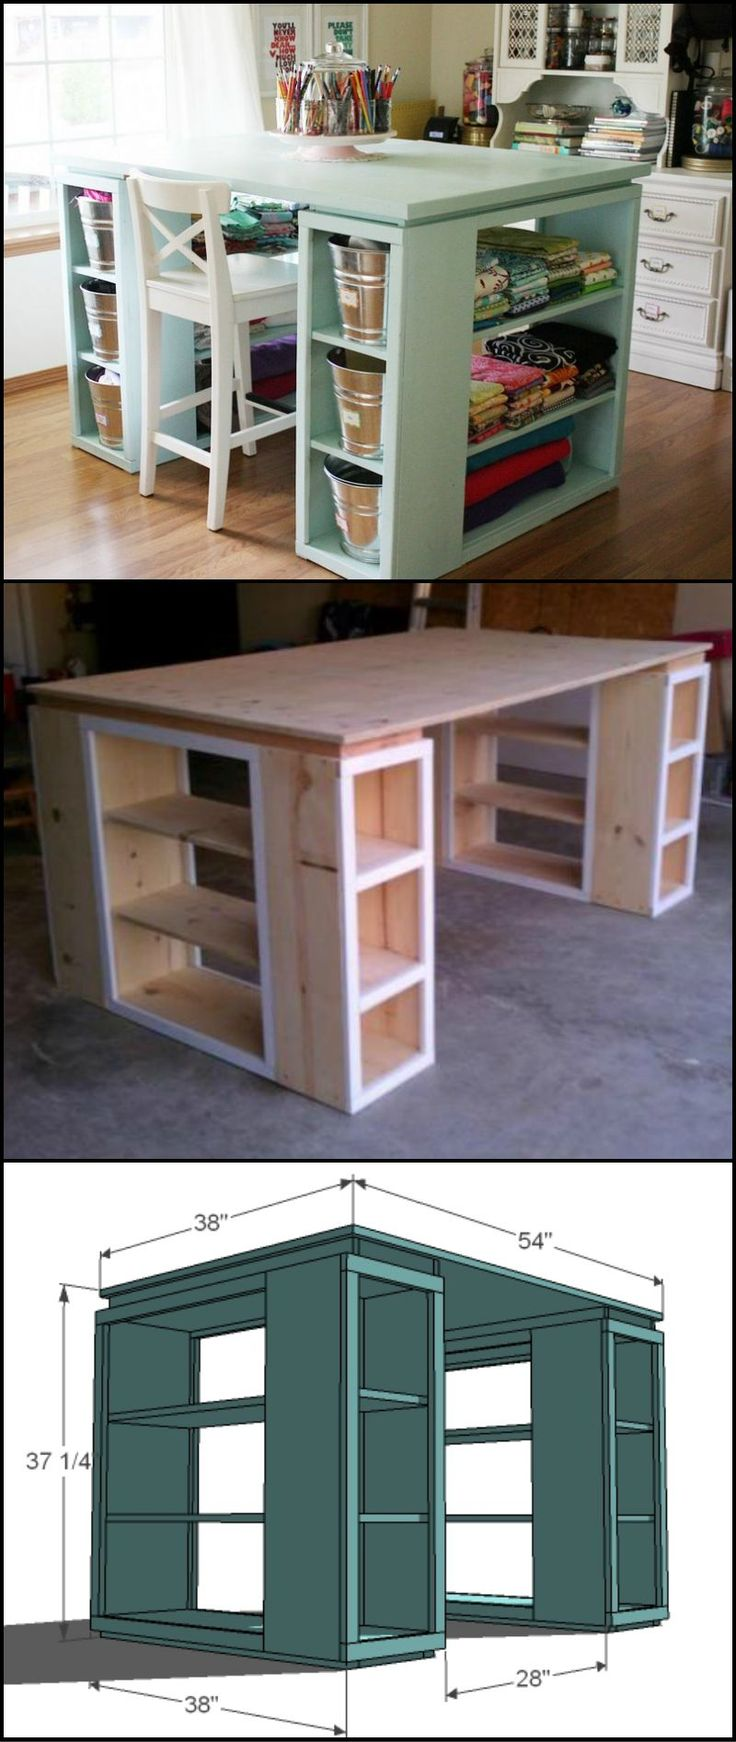 You have a simple craft project that you know you can finish in a few hours. But…